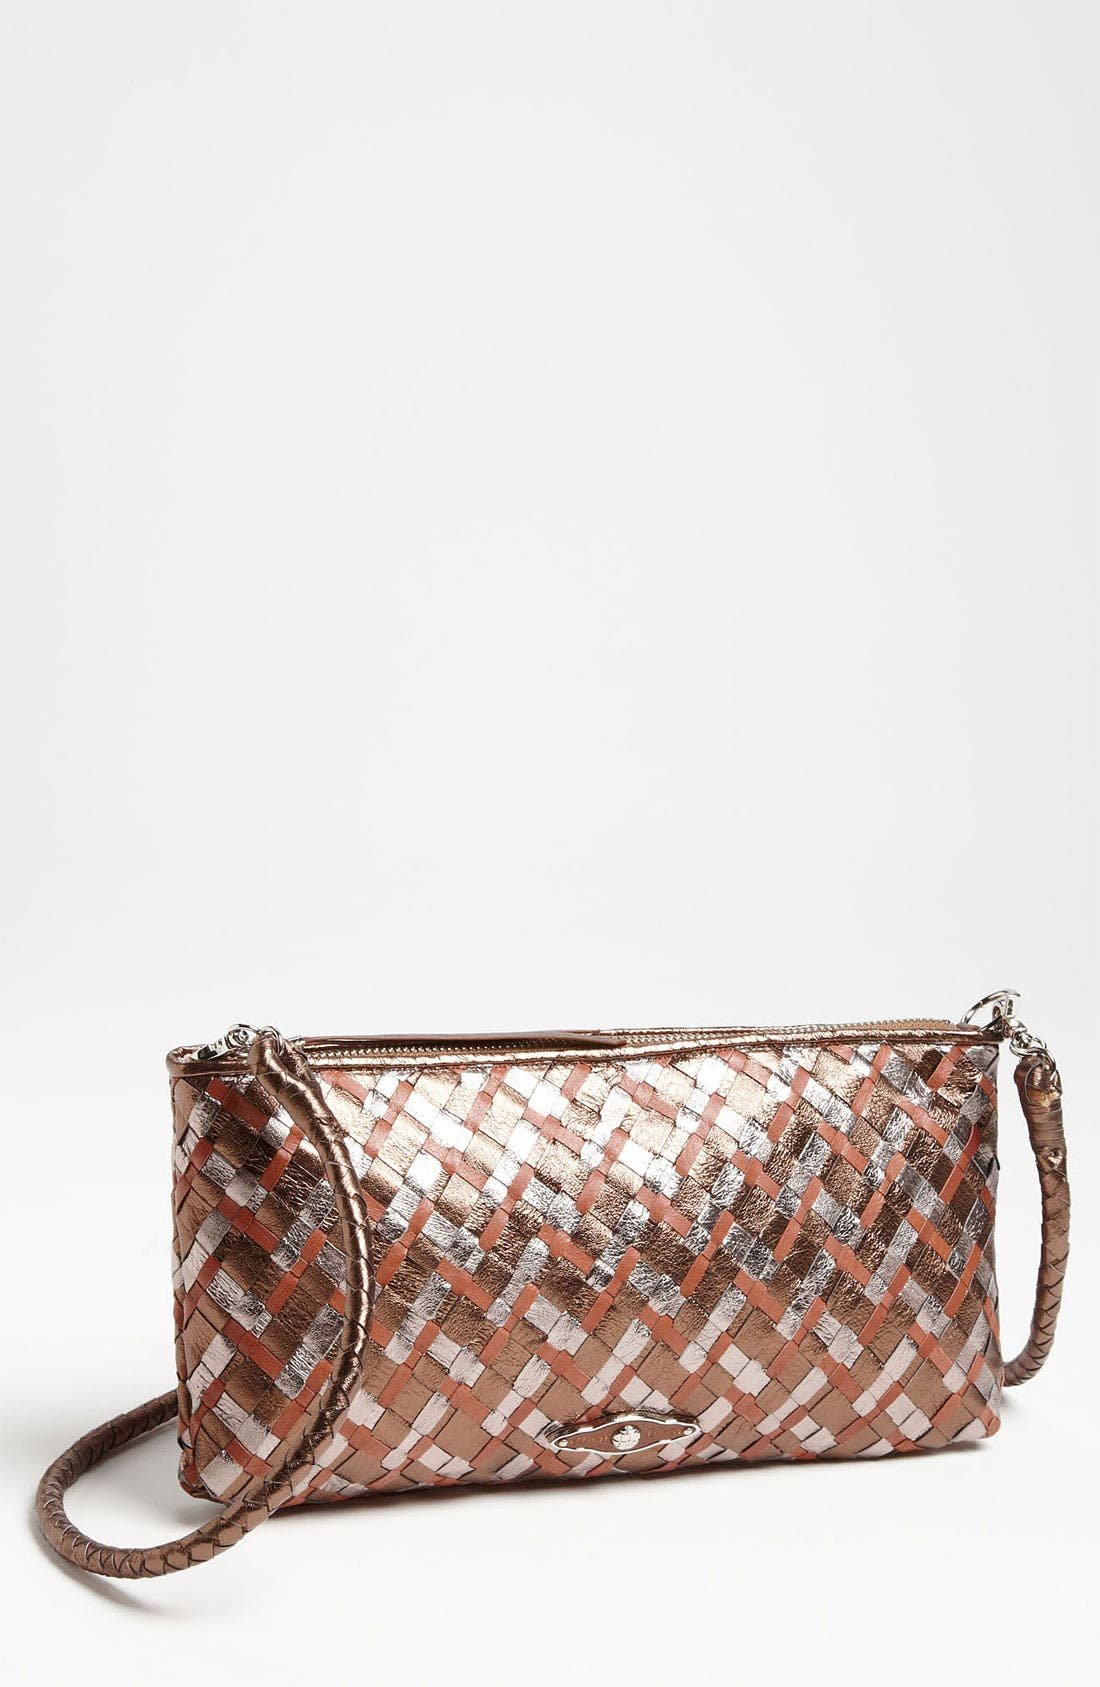 Alternate Image 1 Selected - Elliott Lucca '3-Way' Woven Leather Demi Bag